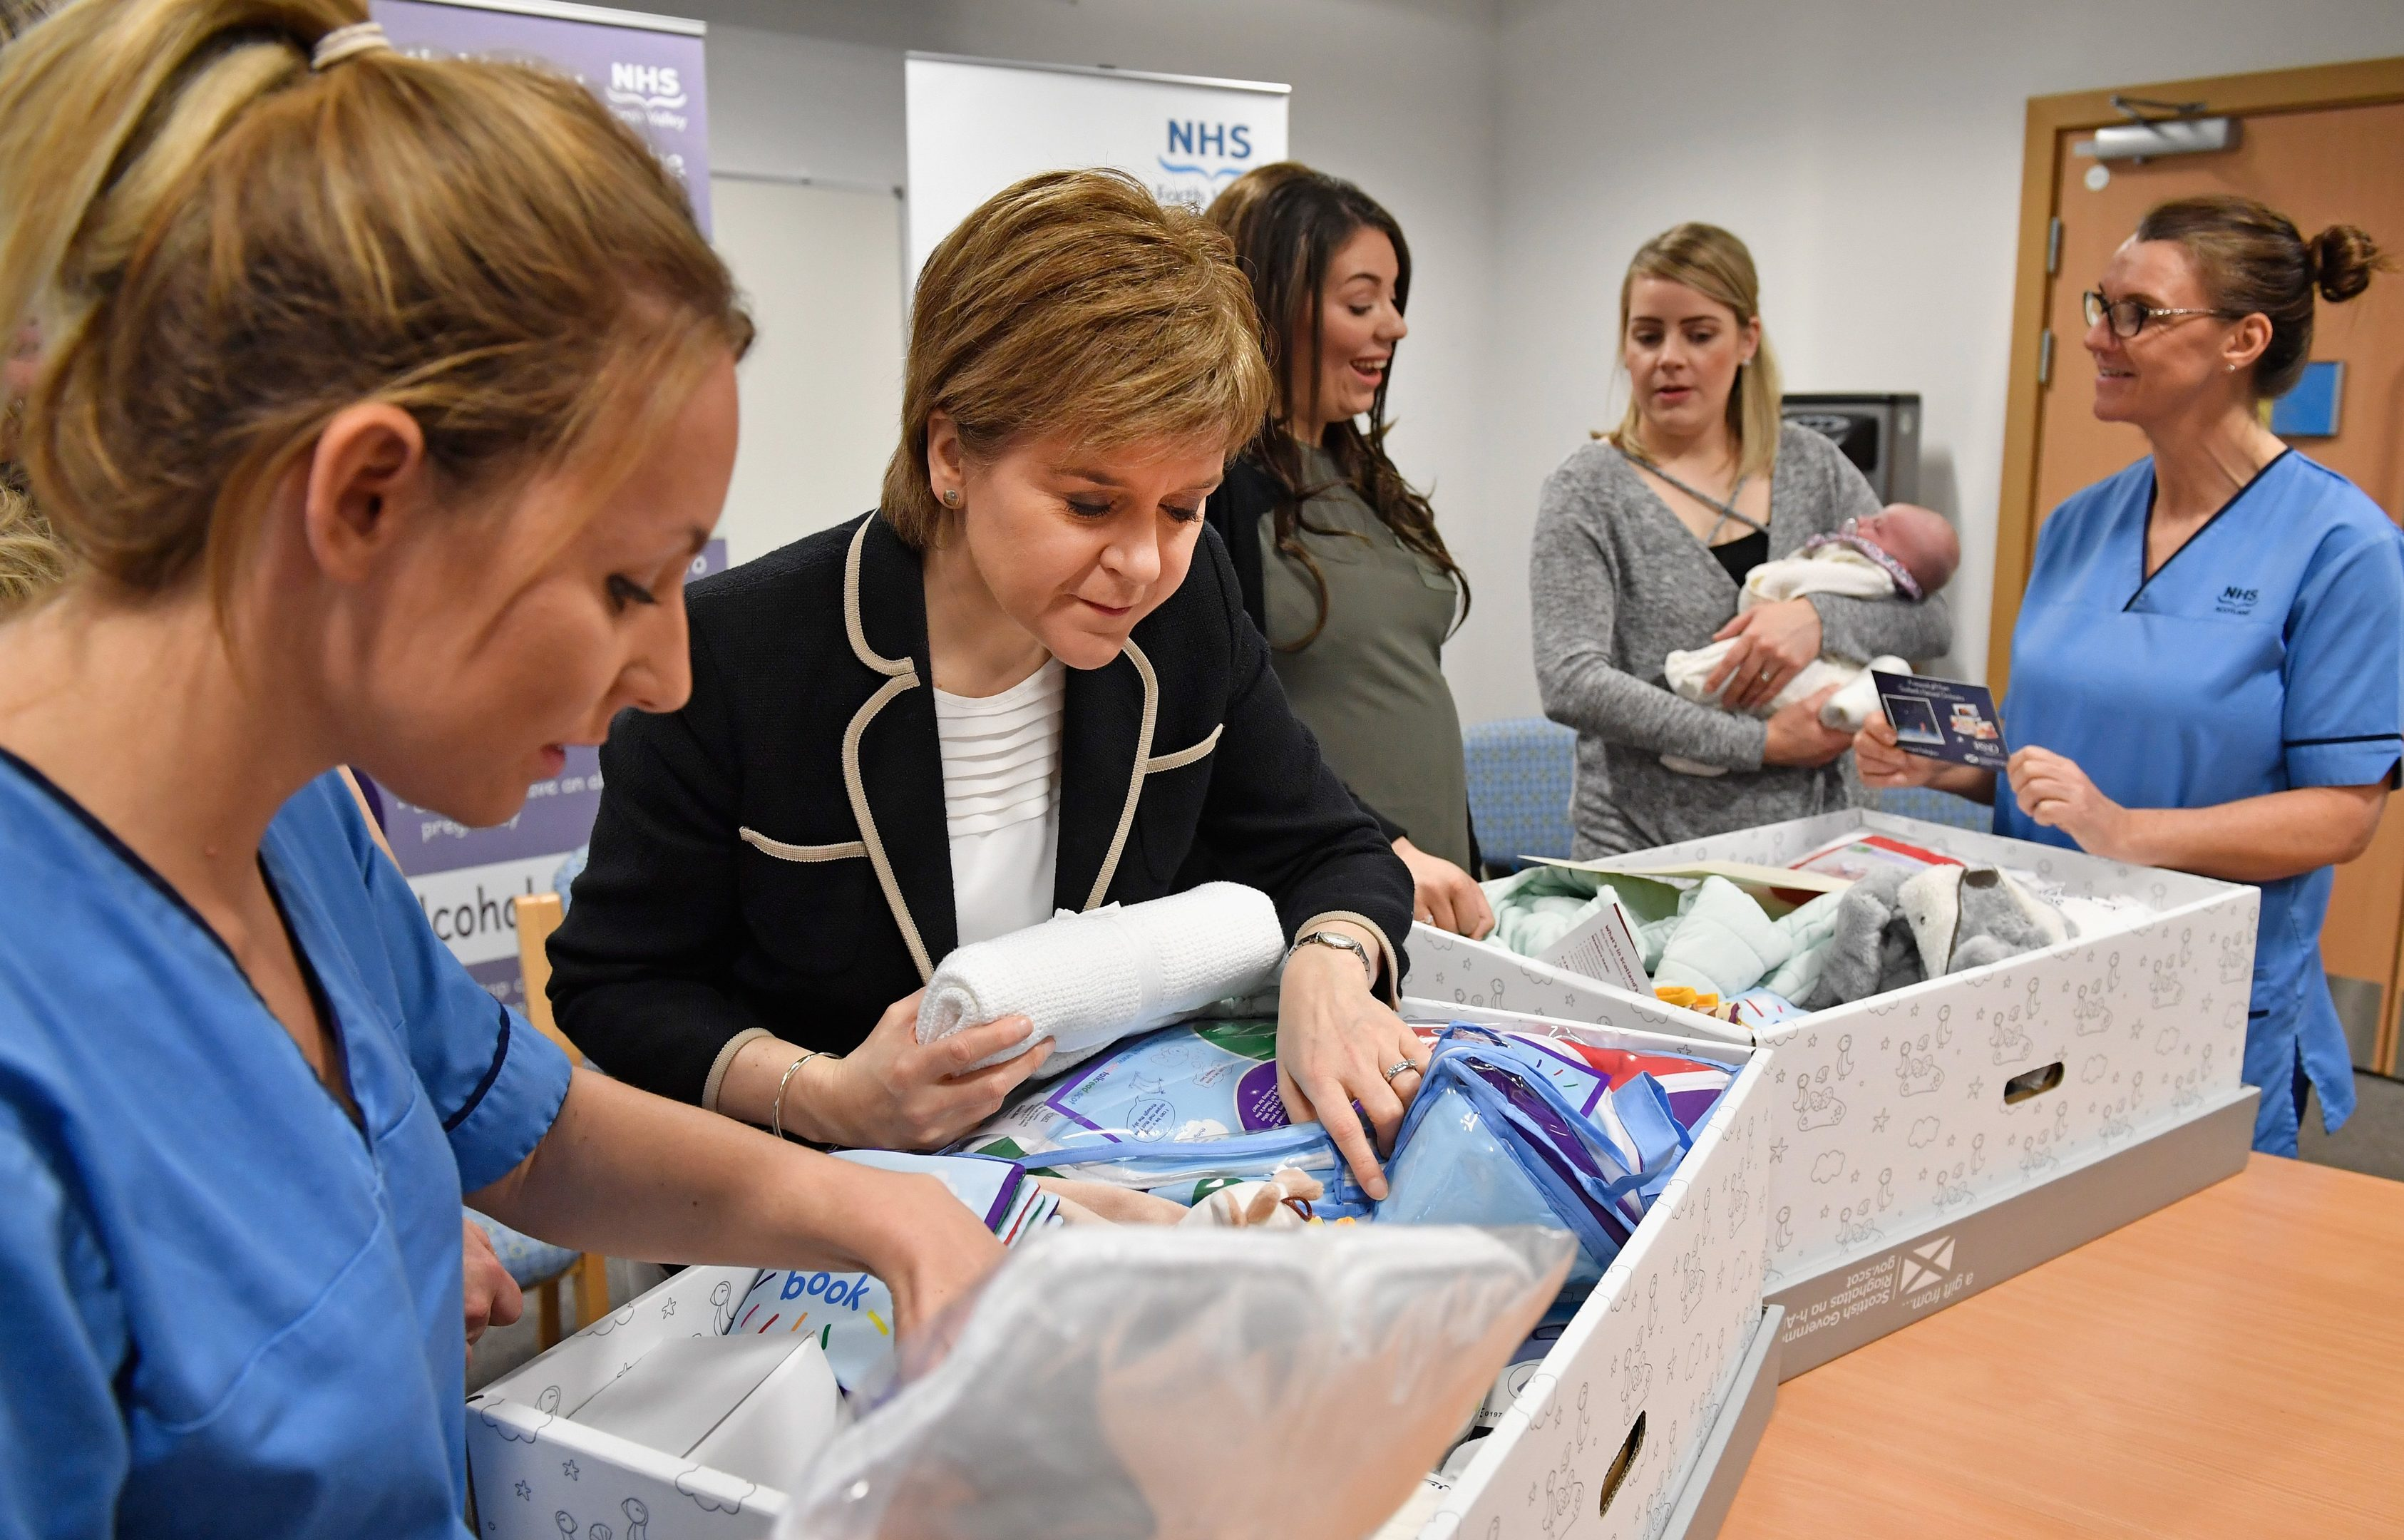 First Minister of Scotland Nicola Sturgeon meets with midwife Rachel Boyland, Toni Akande, Gail and Libby Mellor and midwife Sheila Lannon as she gives out Scotland's first baby boxes at Clackmannanshire Community Health Centre